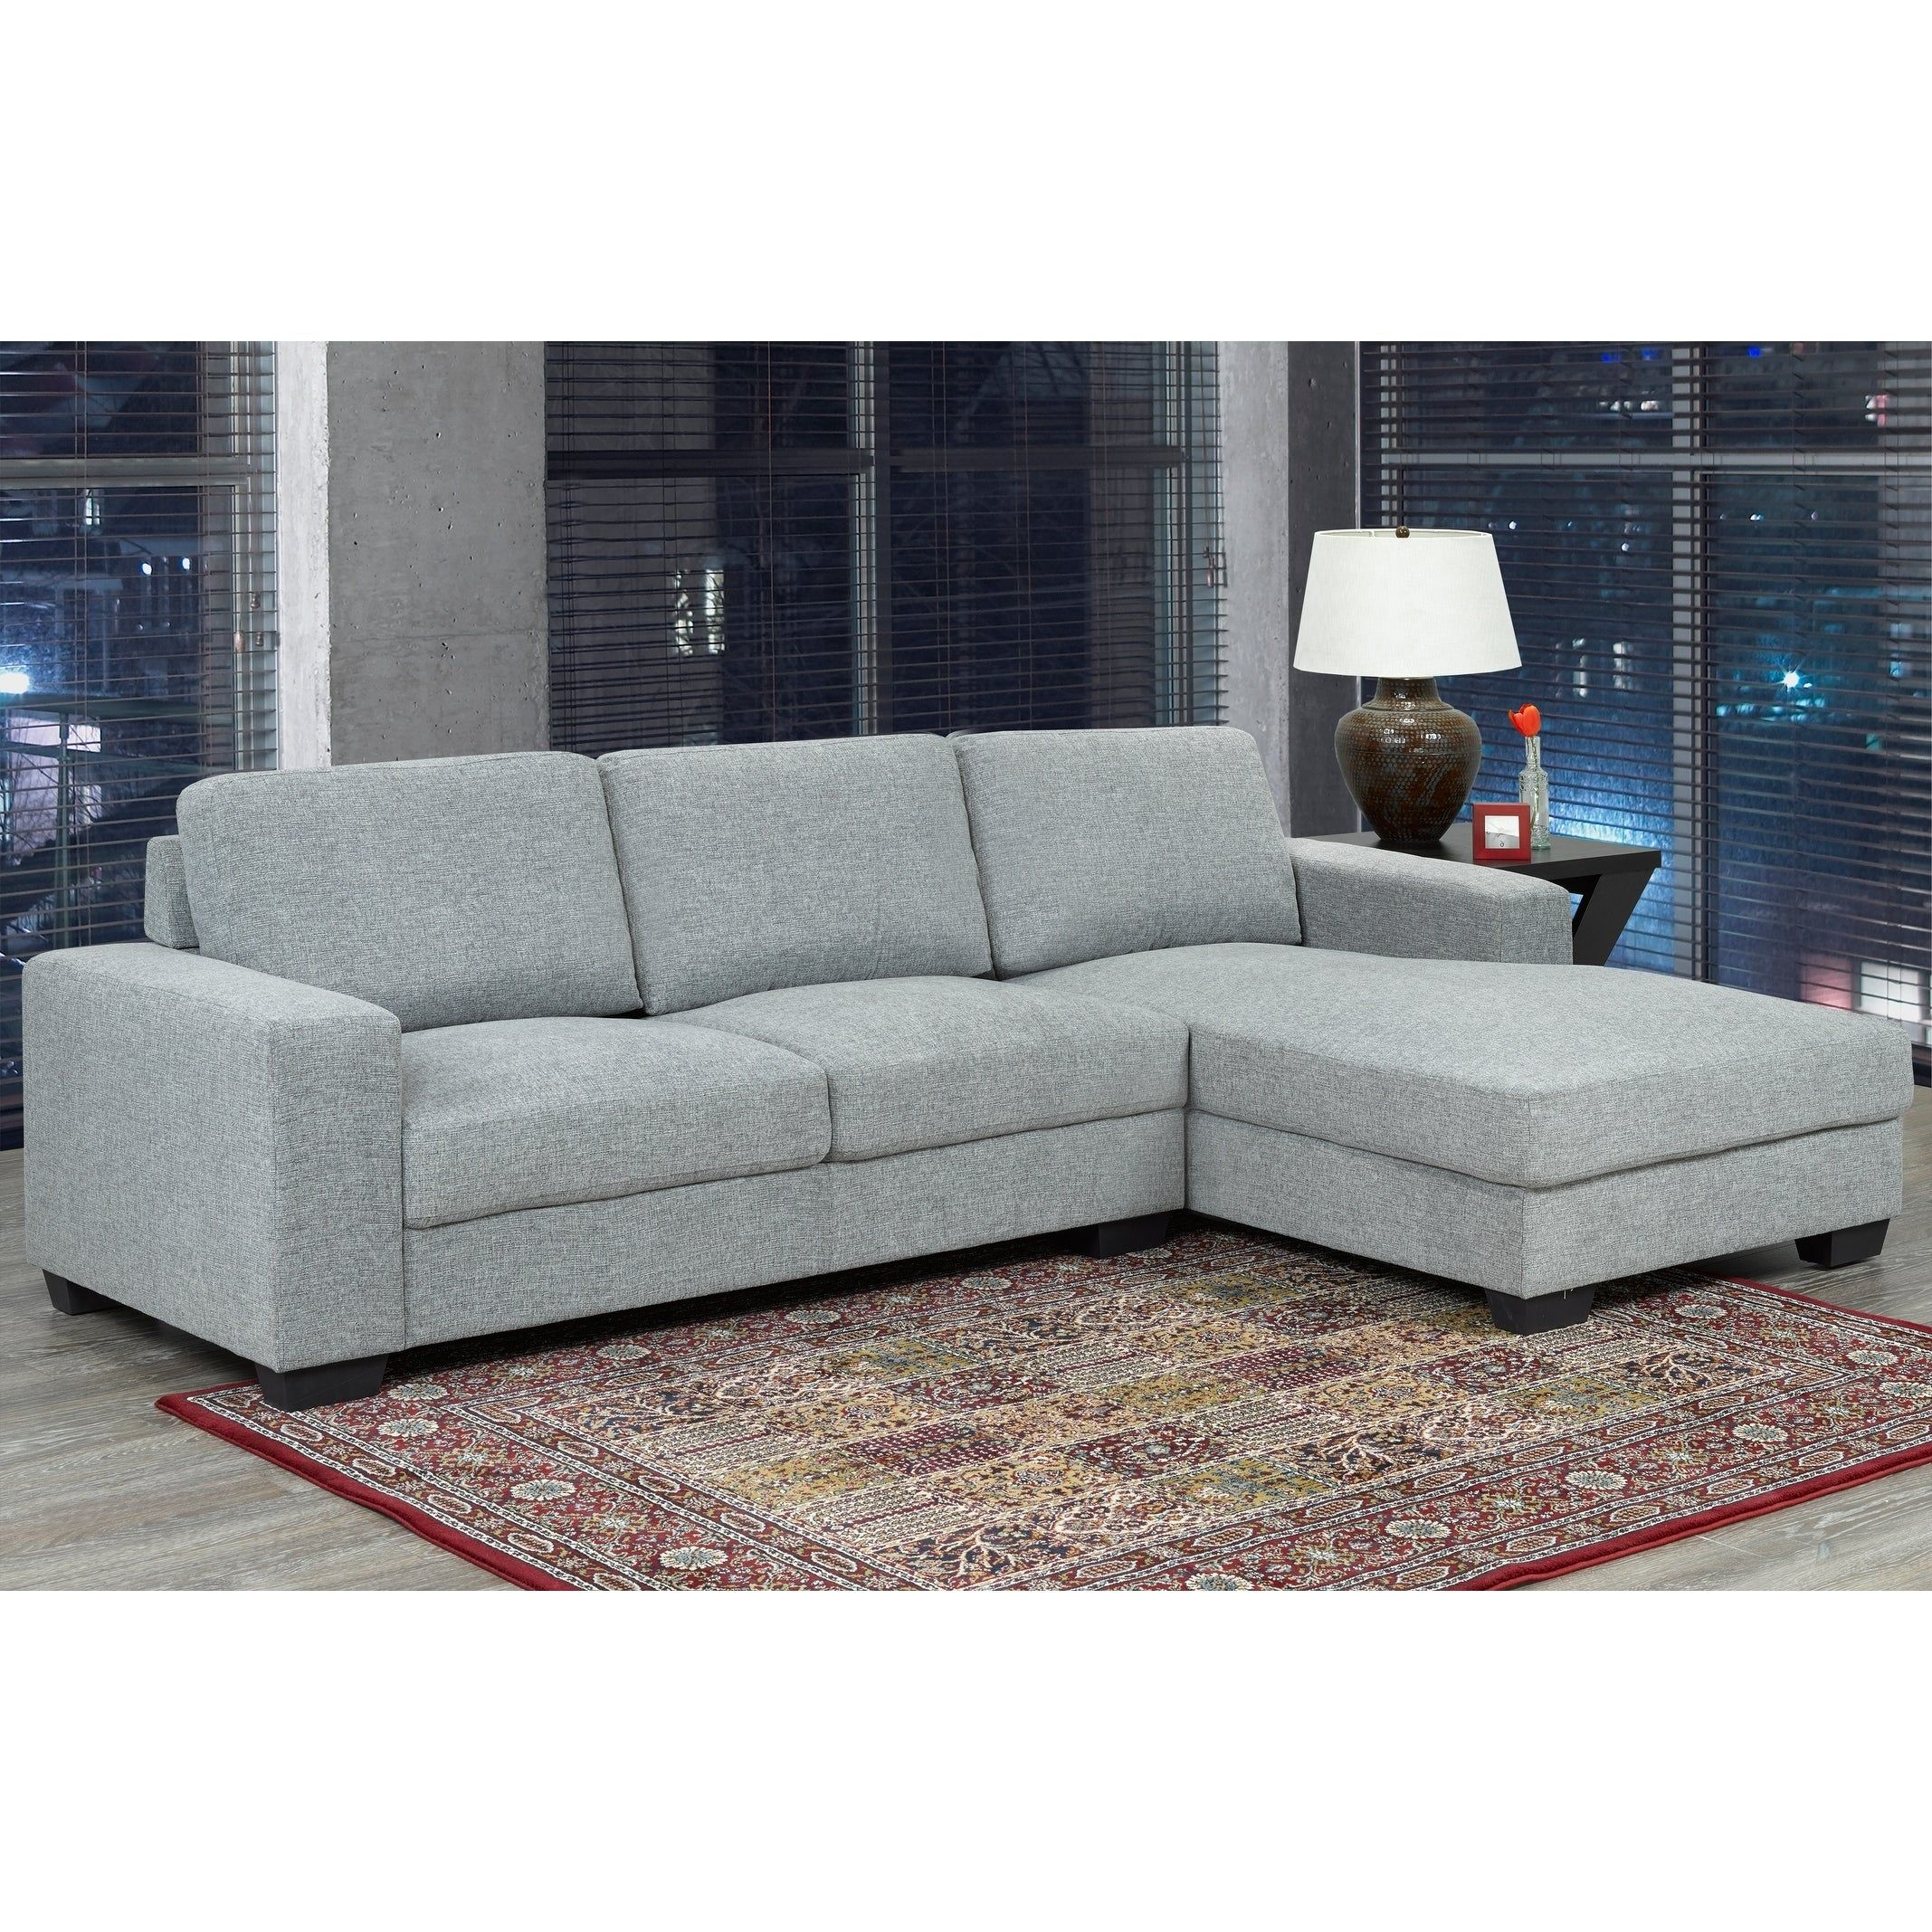 Online Shopping Bedding Furniture Electronics Jewelry Clothing More Luxury Home Furniture Furniture Sectional Sofa